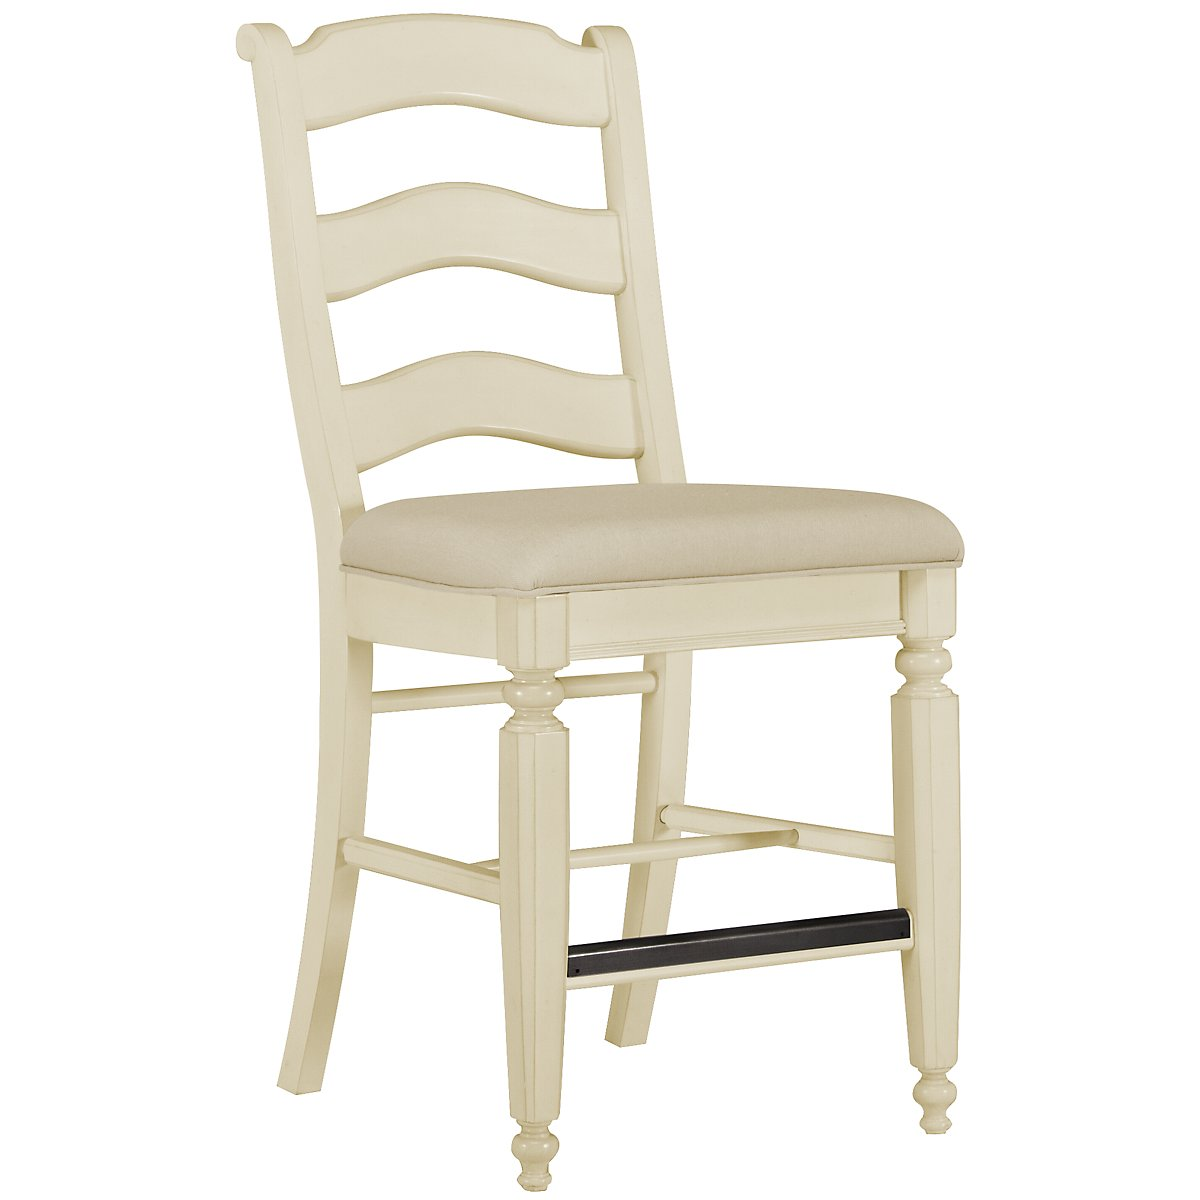 "Claire White 24"" Wood Barstool"